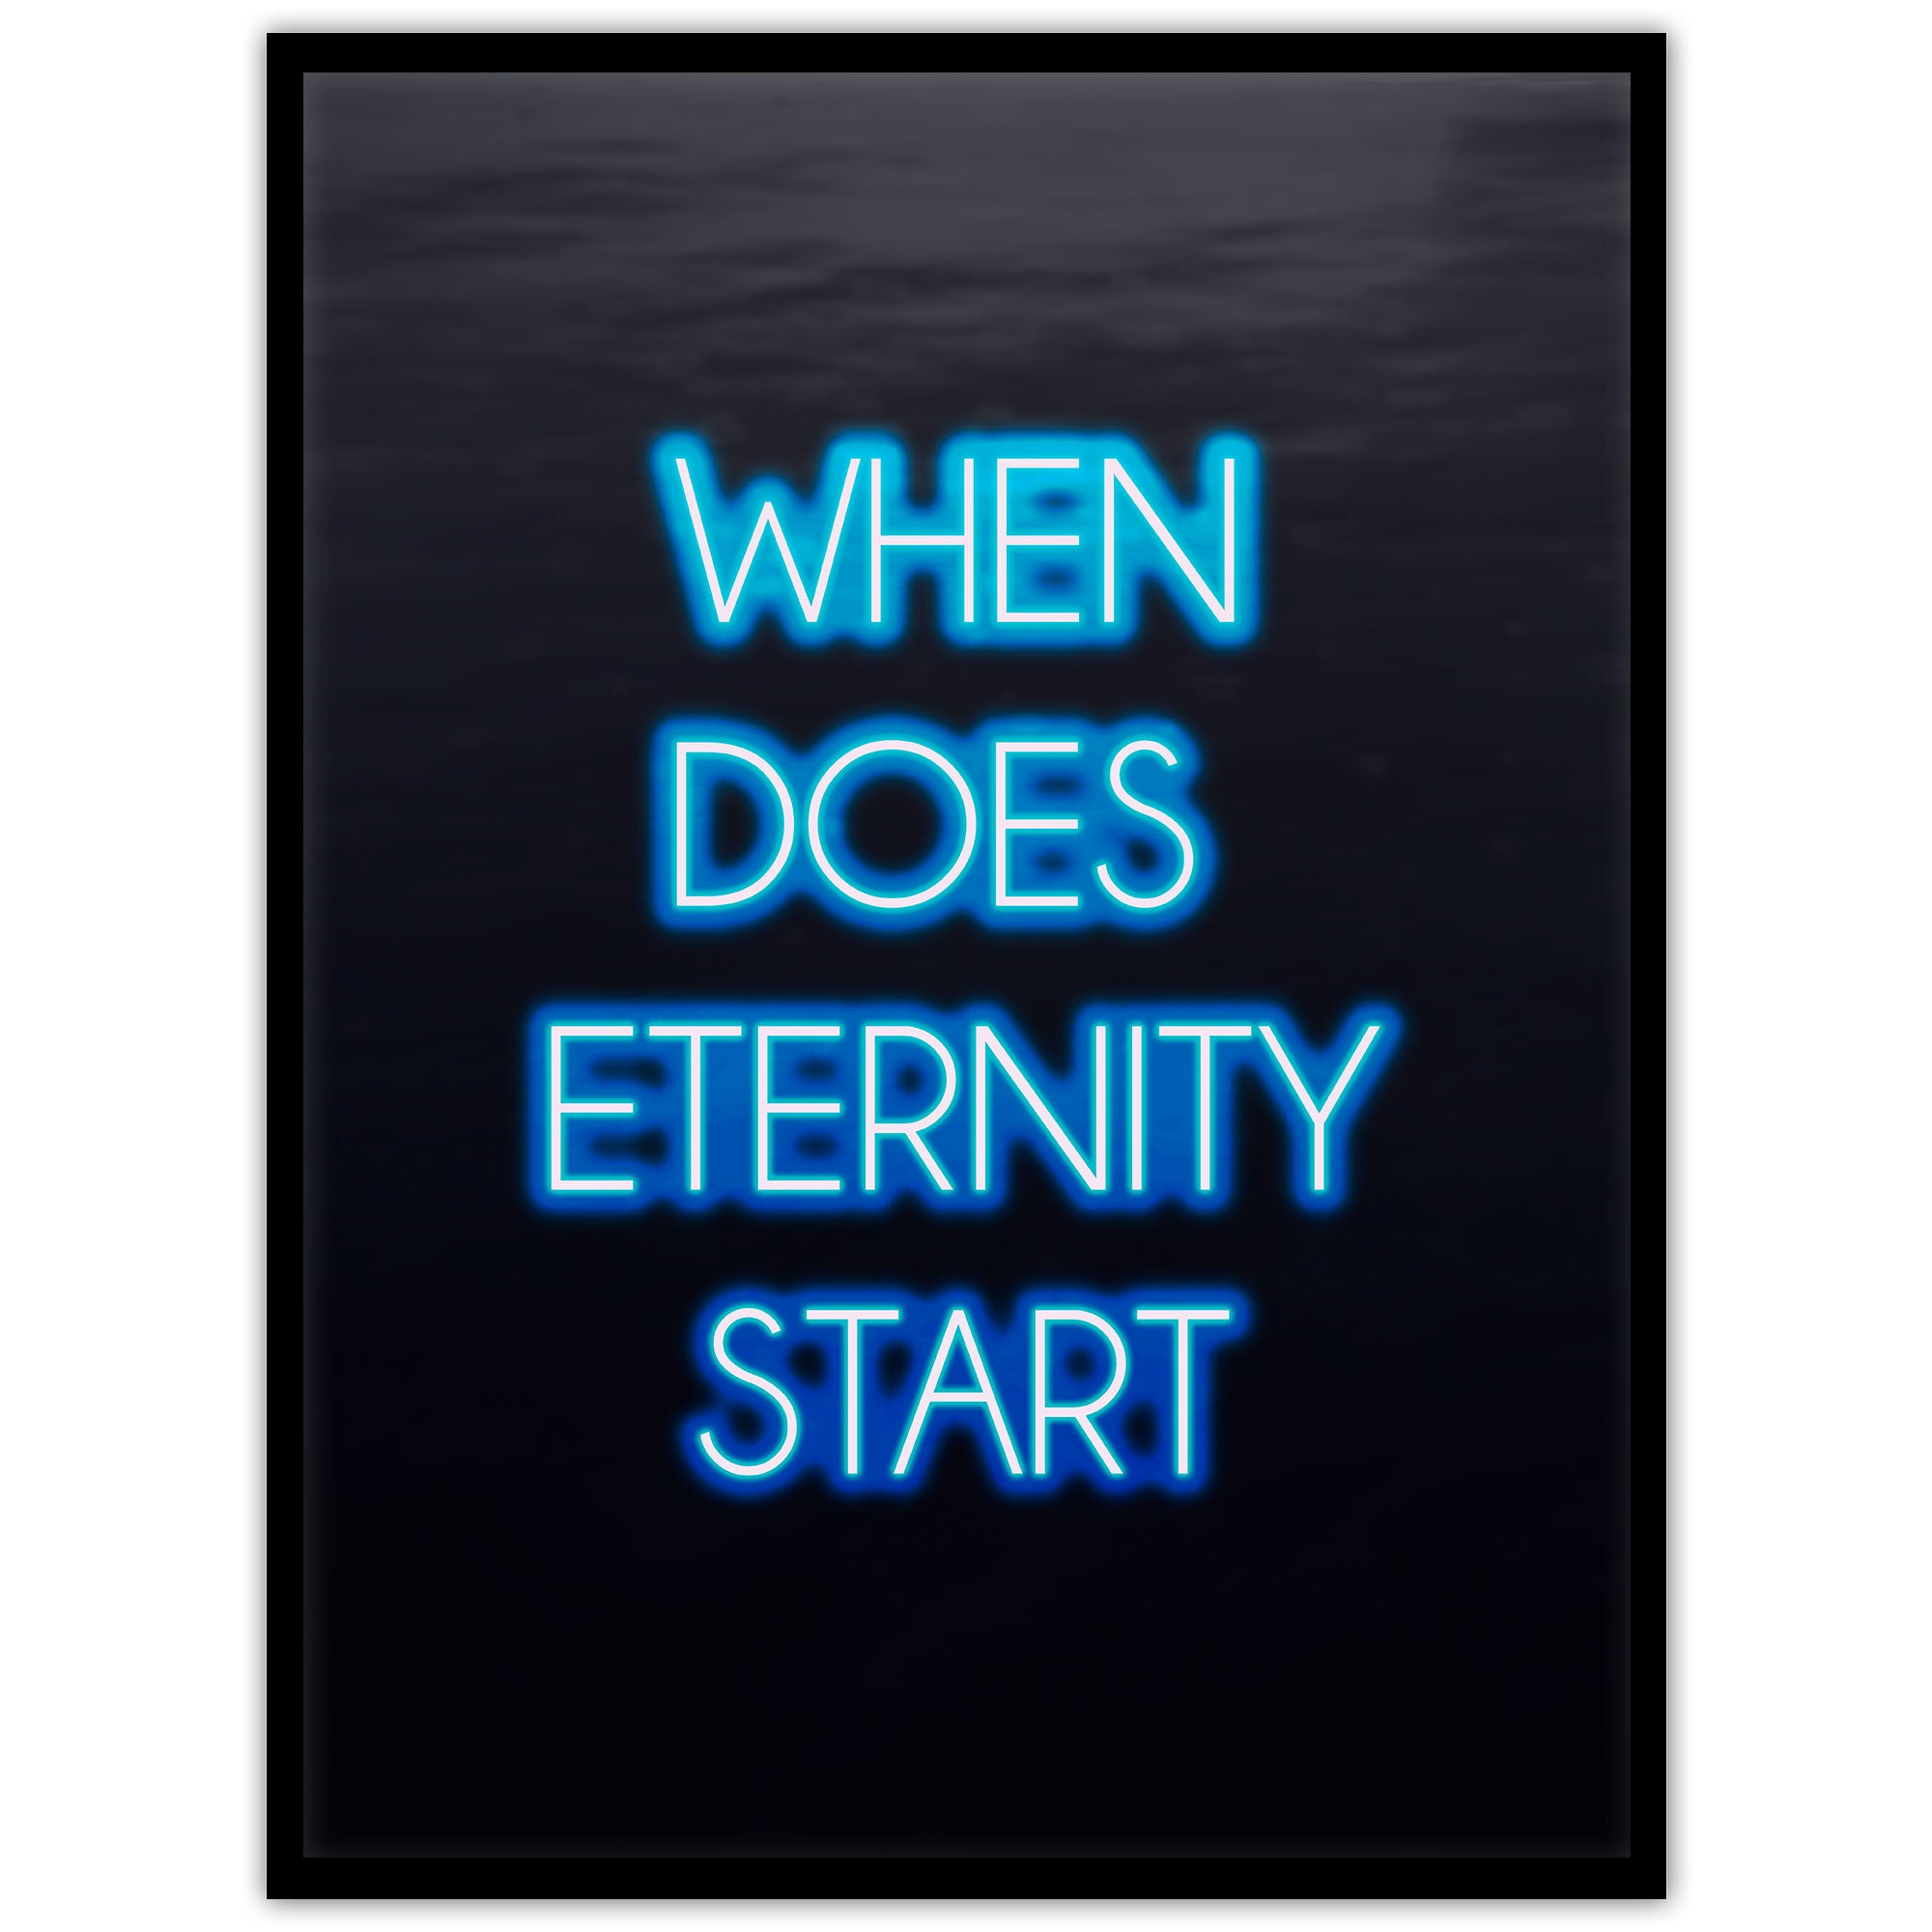 Neon: When does eternity start? - Studio Caro-lines